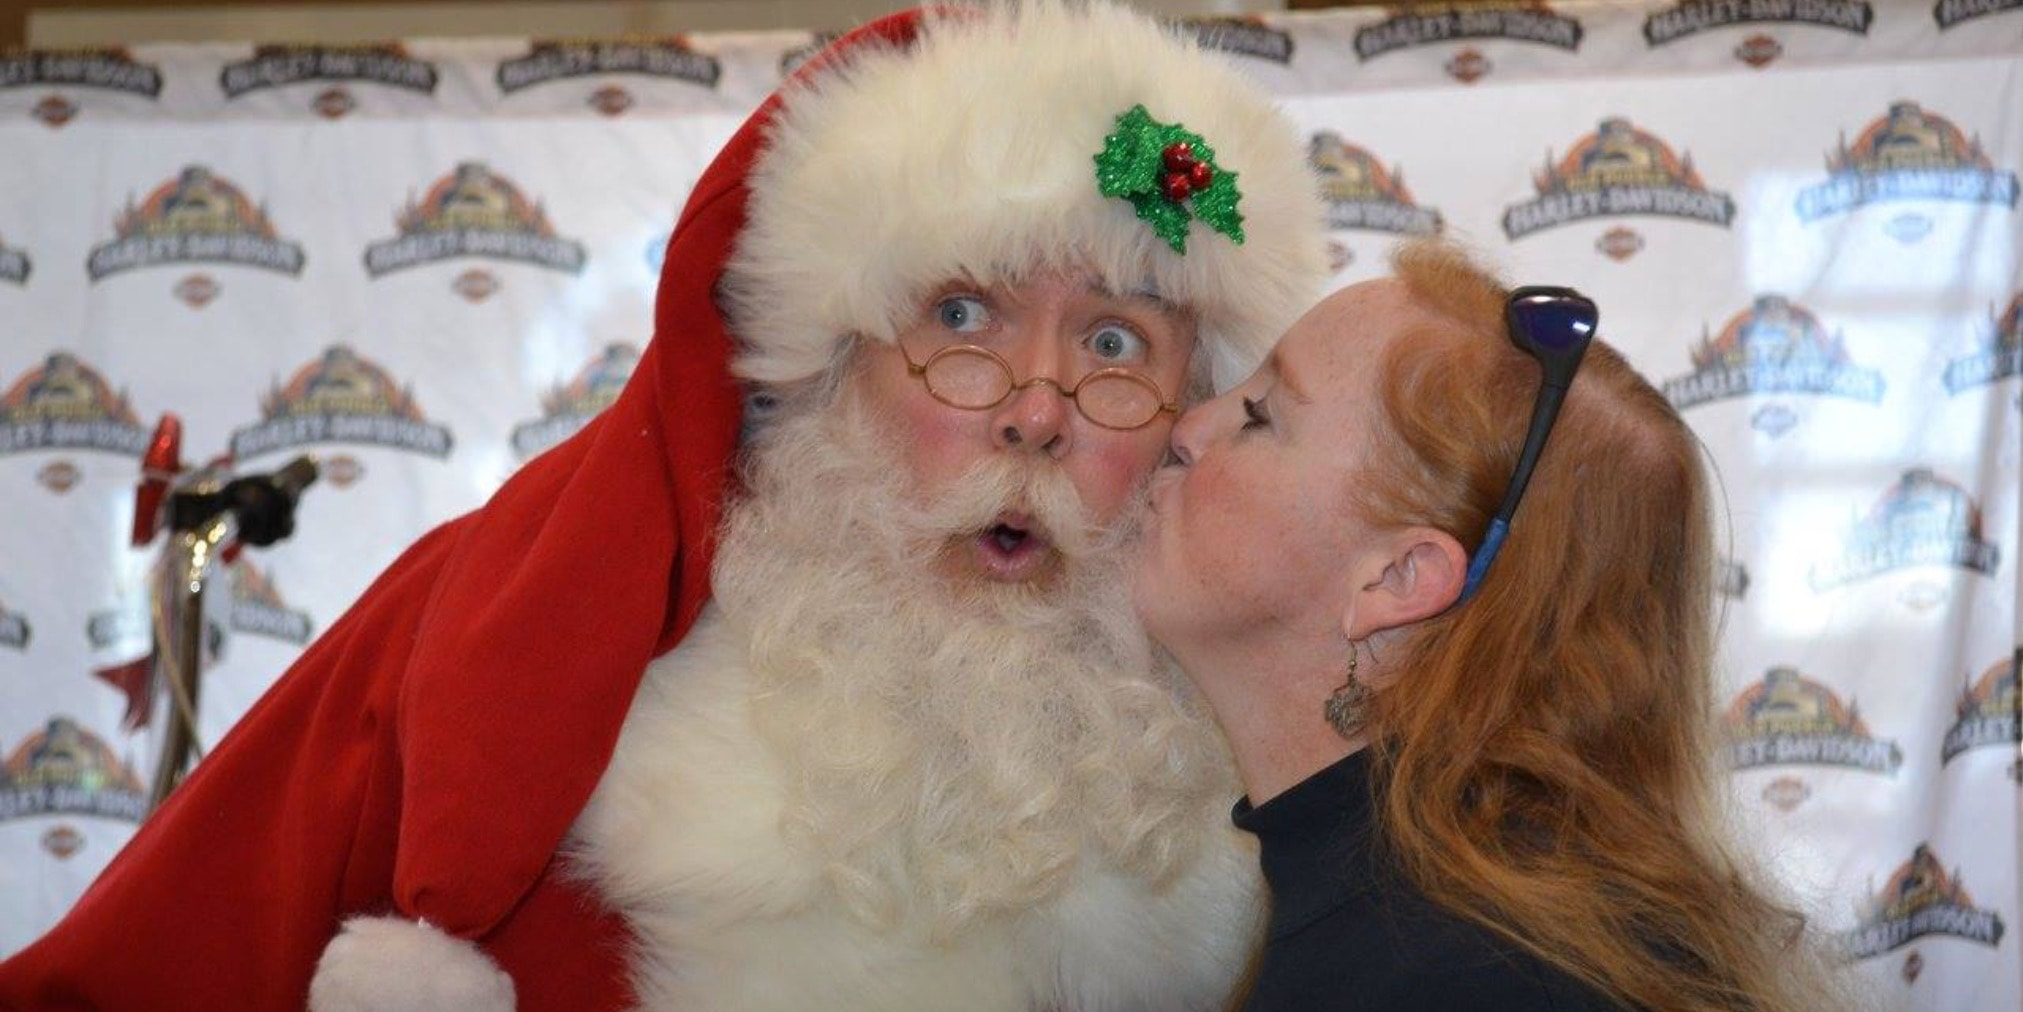 Stealing a kiss from Santa